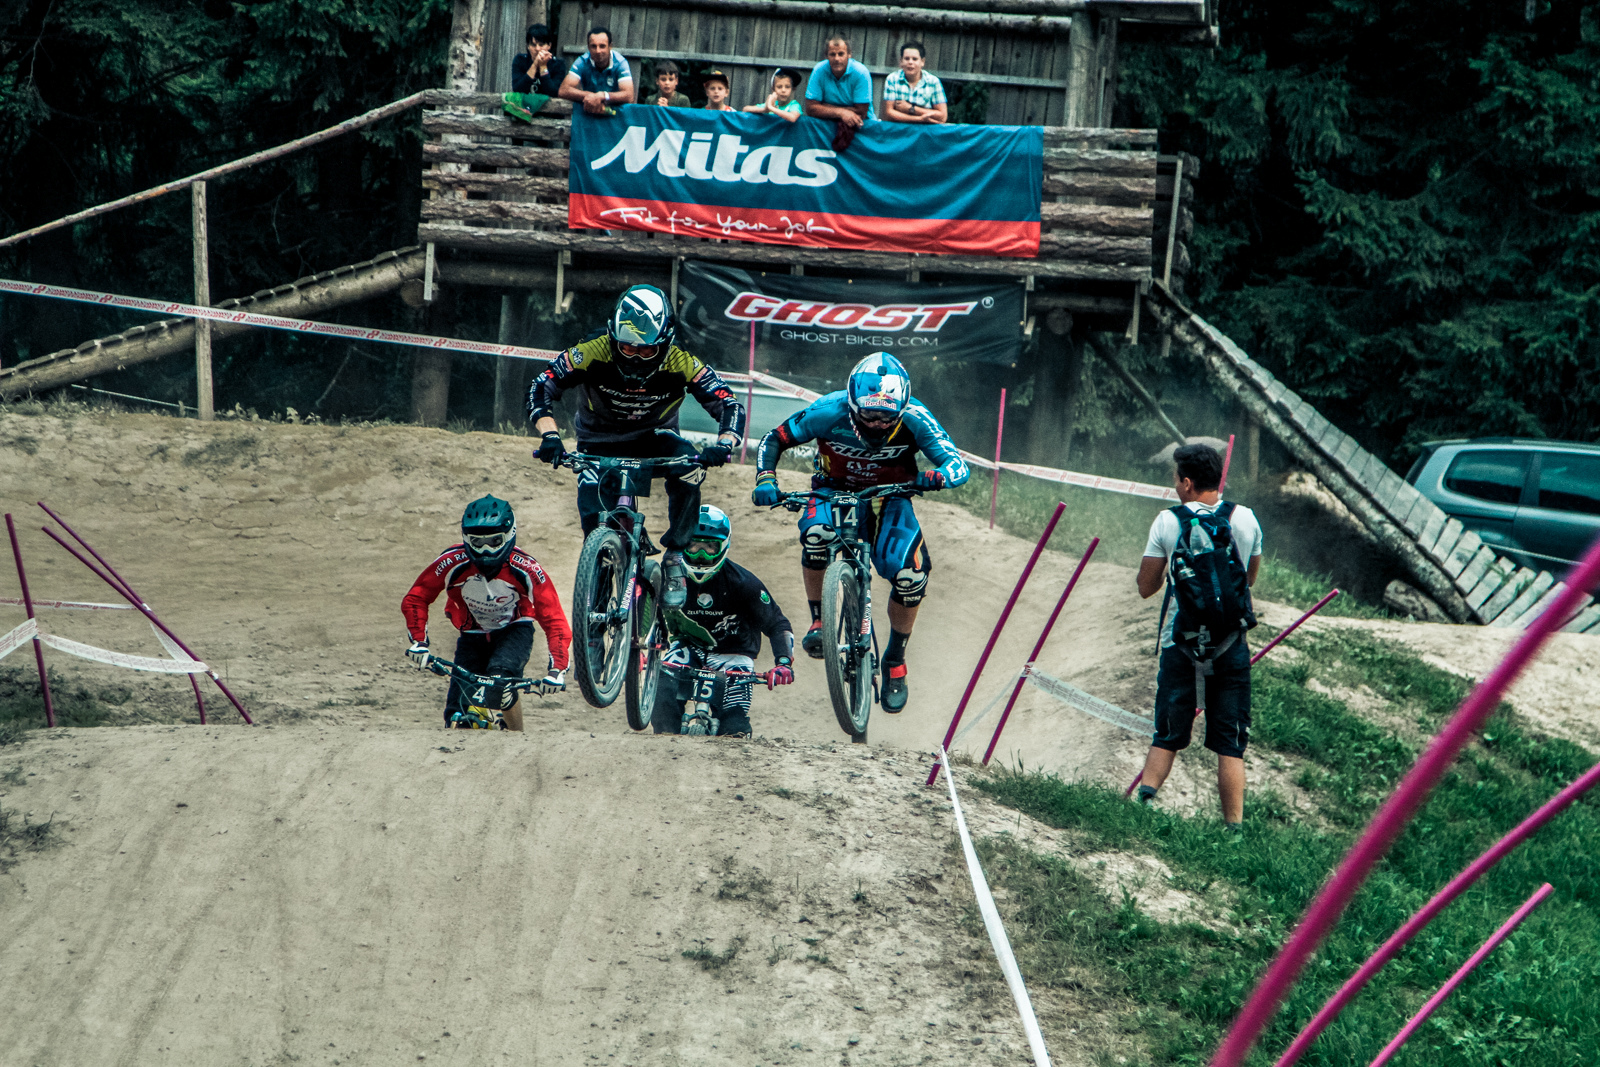 Waldburger and Slavik in a hard battle after the first turn - Photographer Christoph Vonmetz